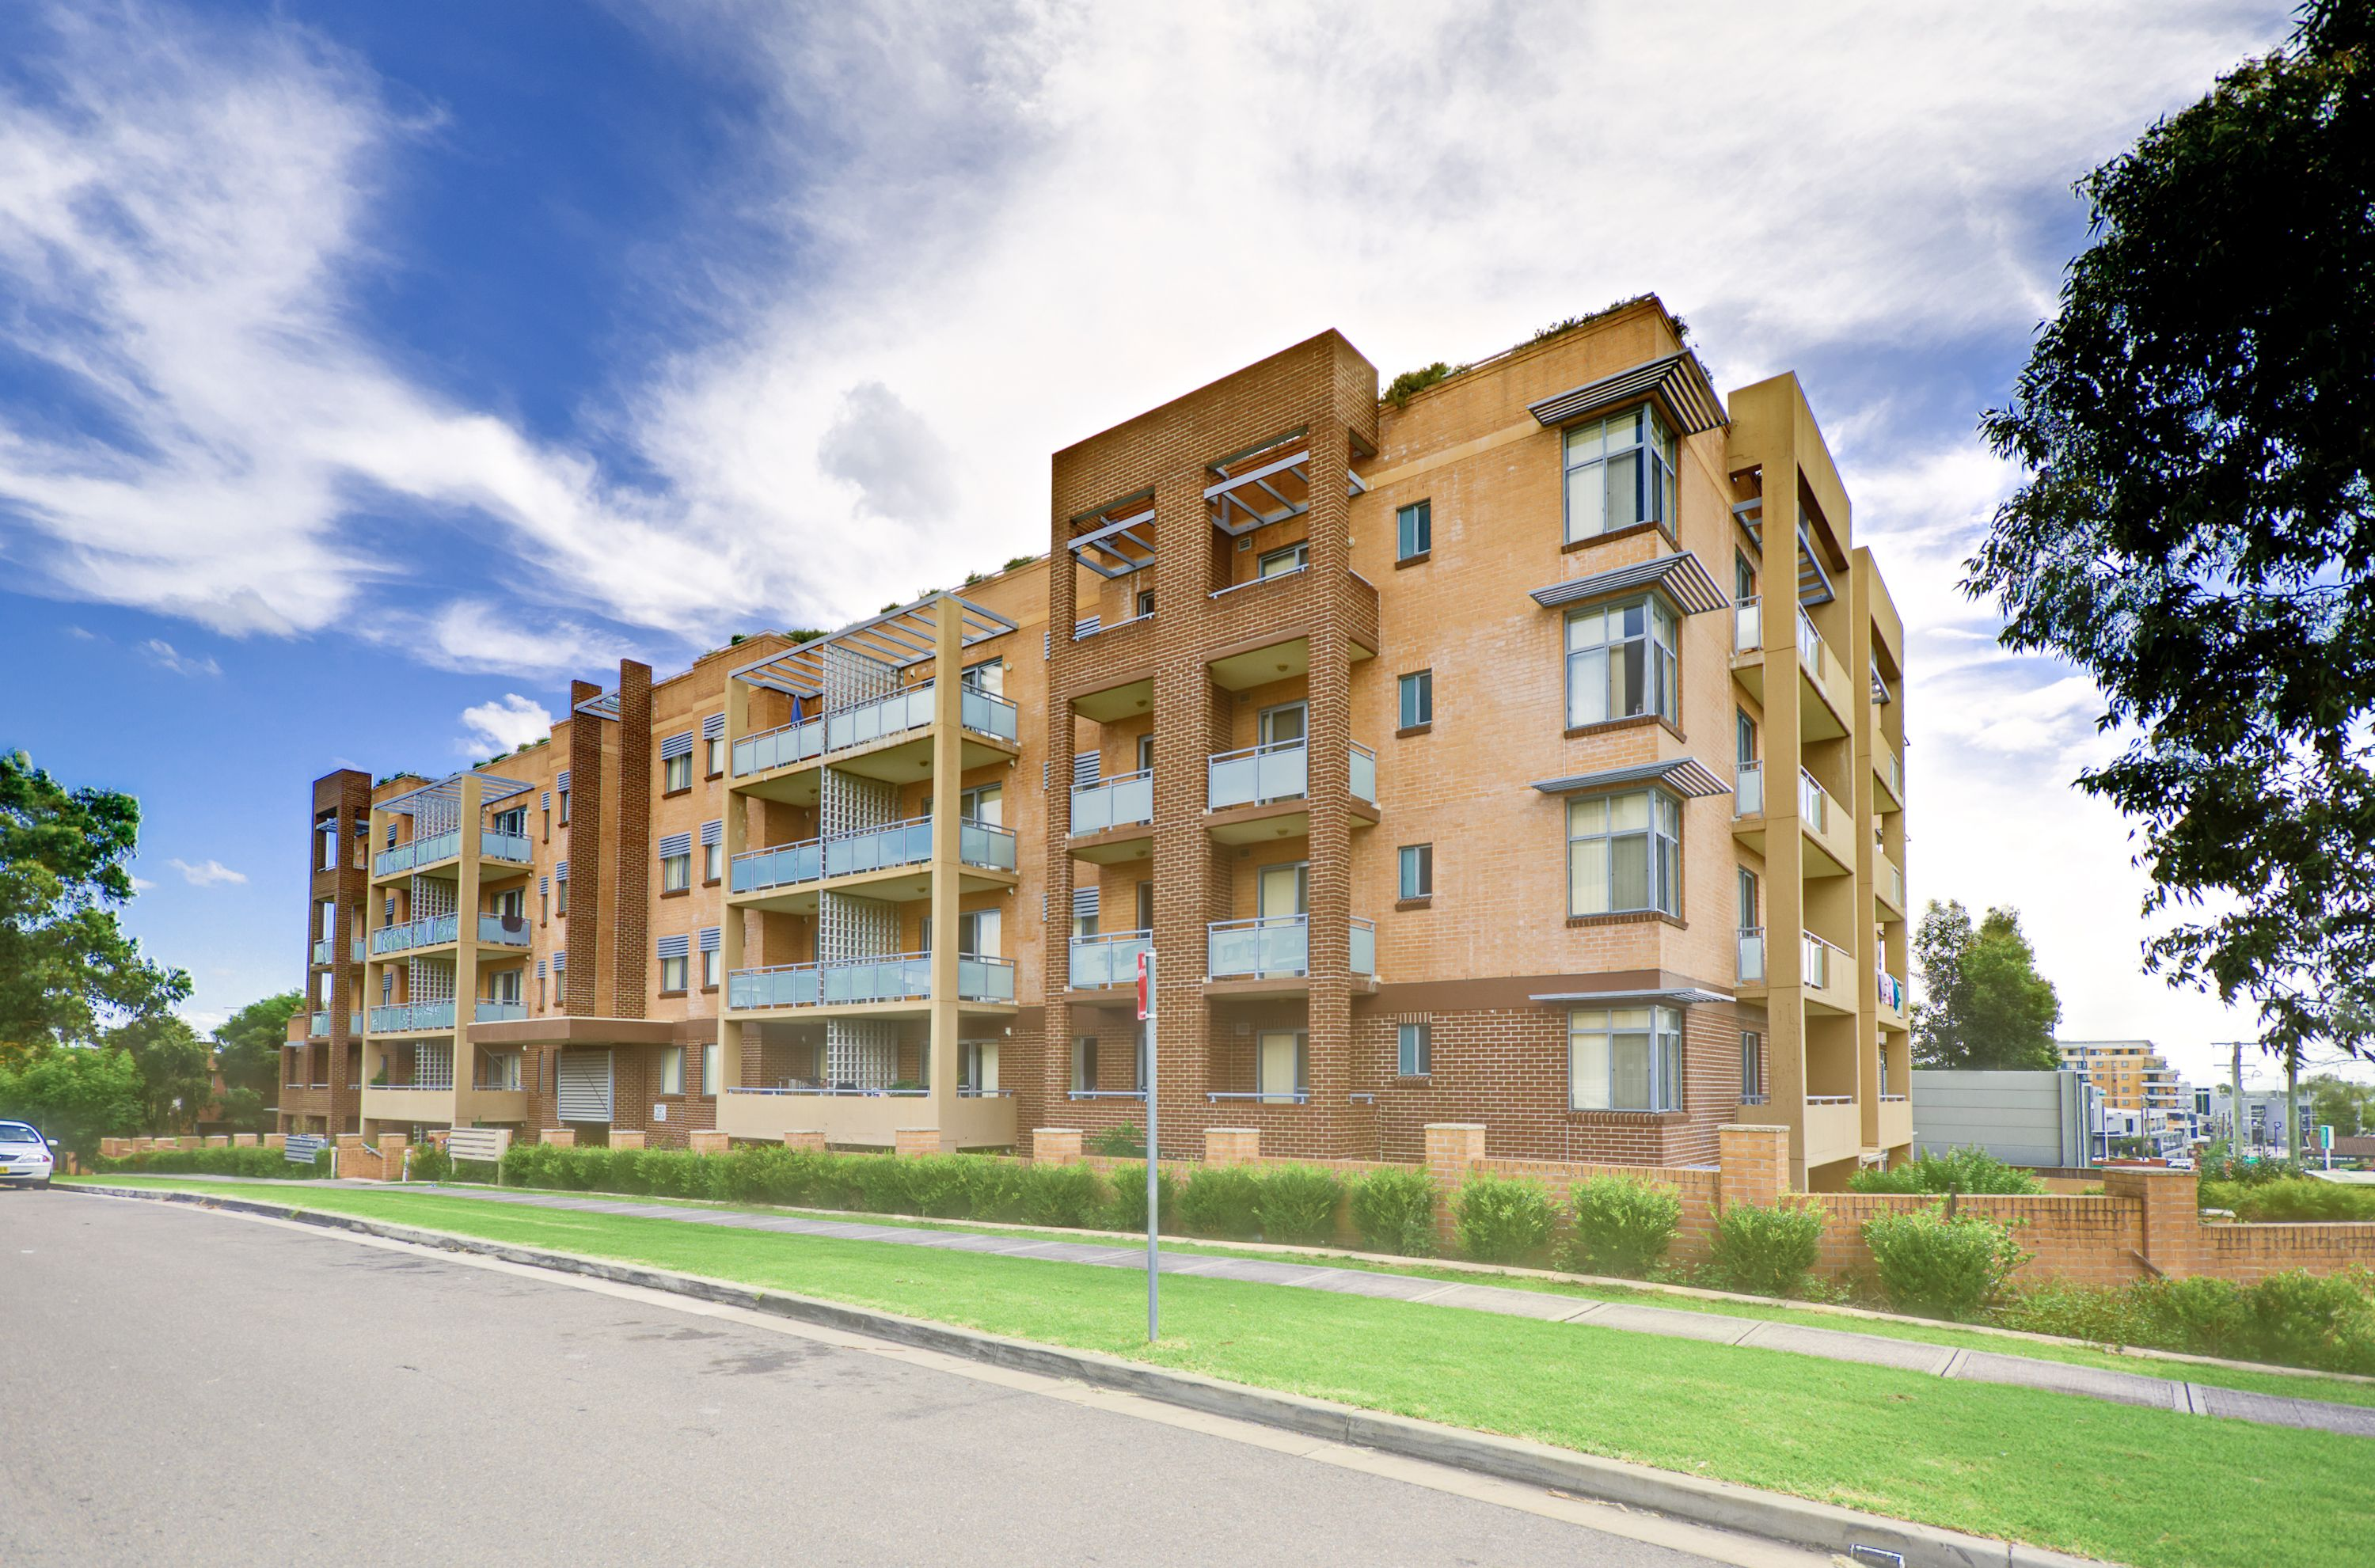 19/8-18 Wallace Street, Blacktown NSW 2148